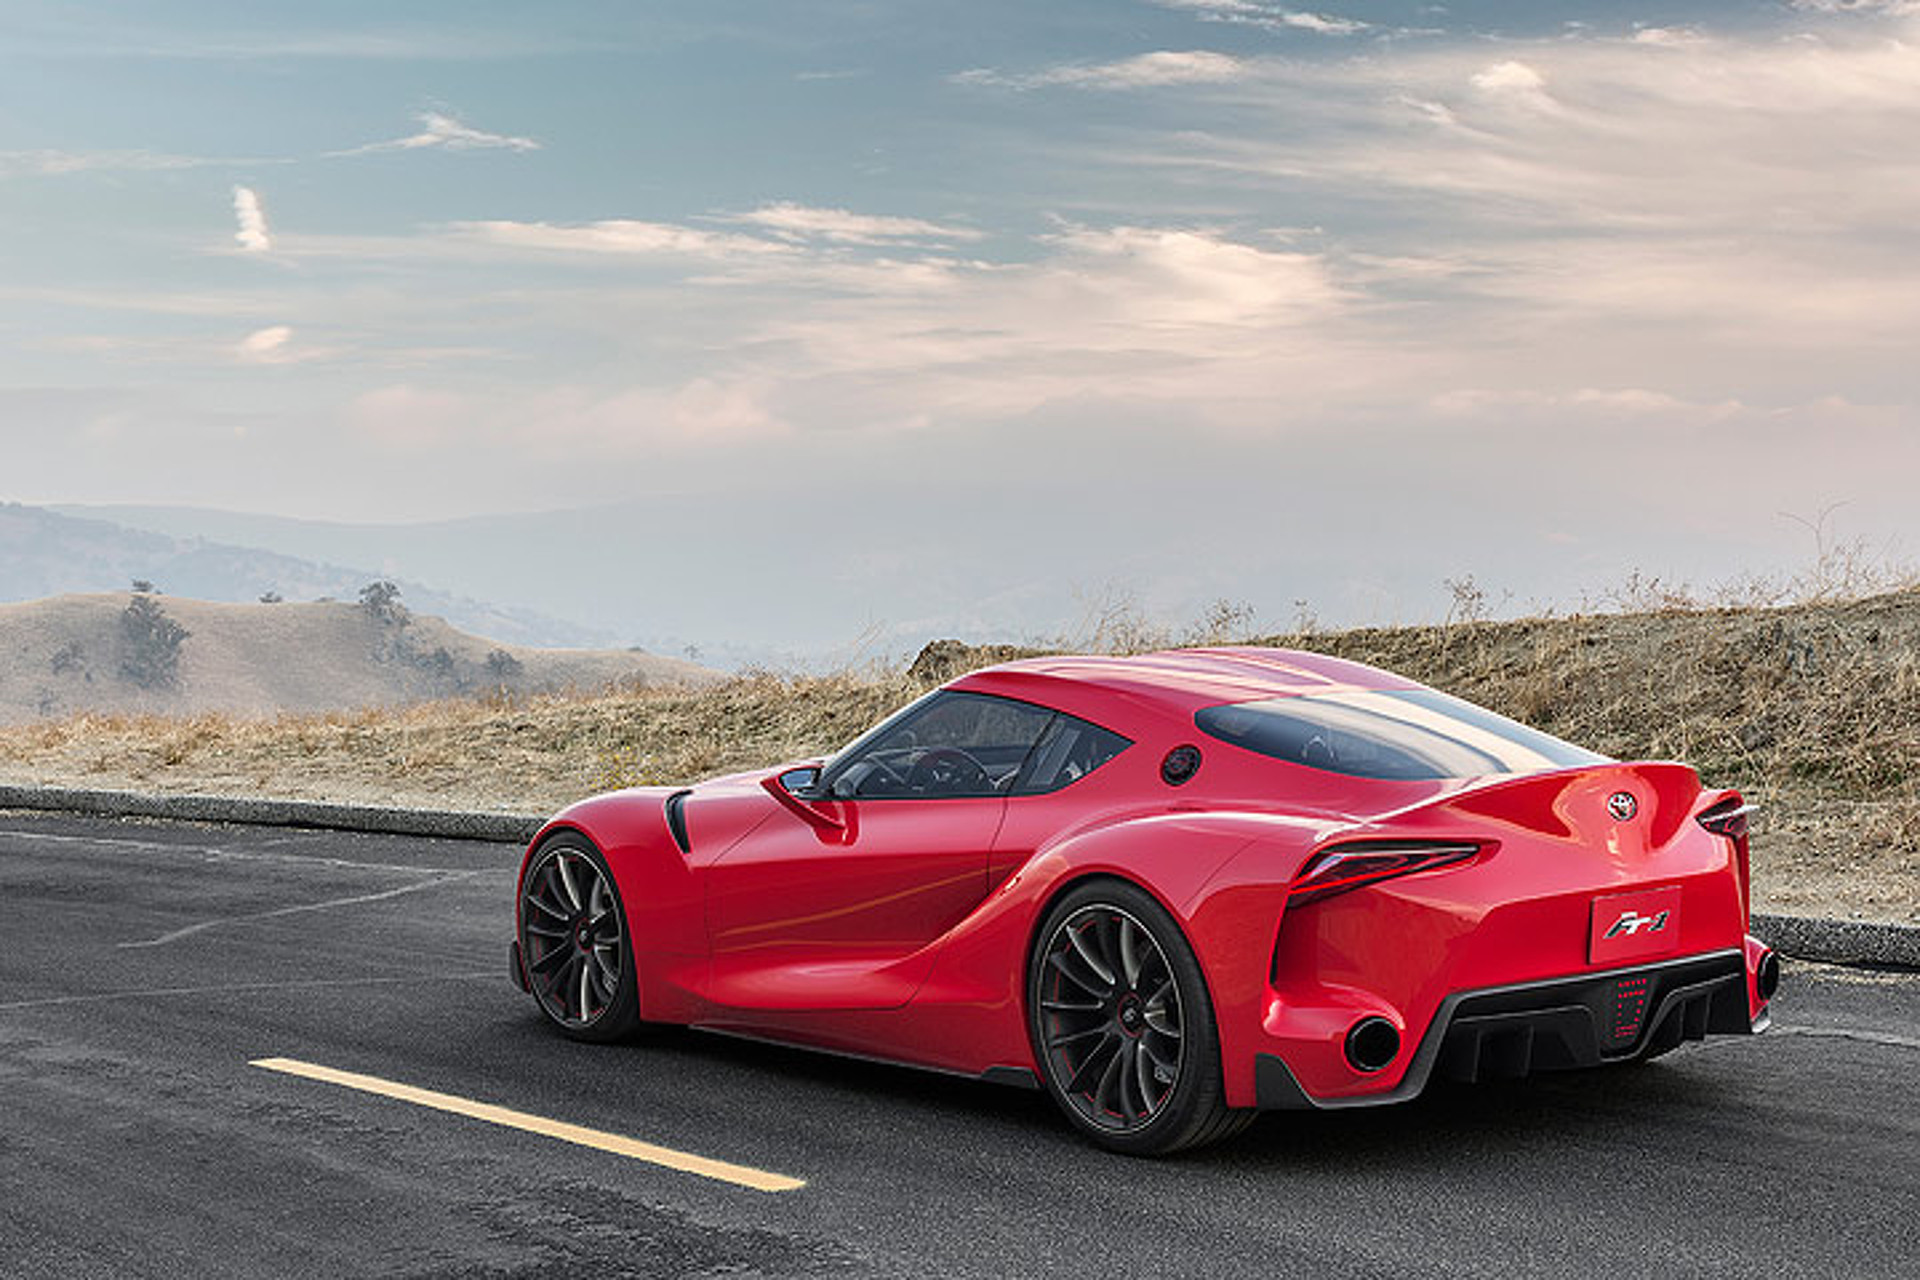 Next-Gen Supra May Aim Between Porsche 911 and Cayman